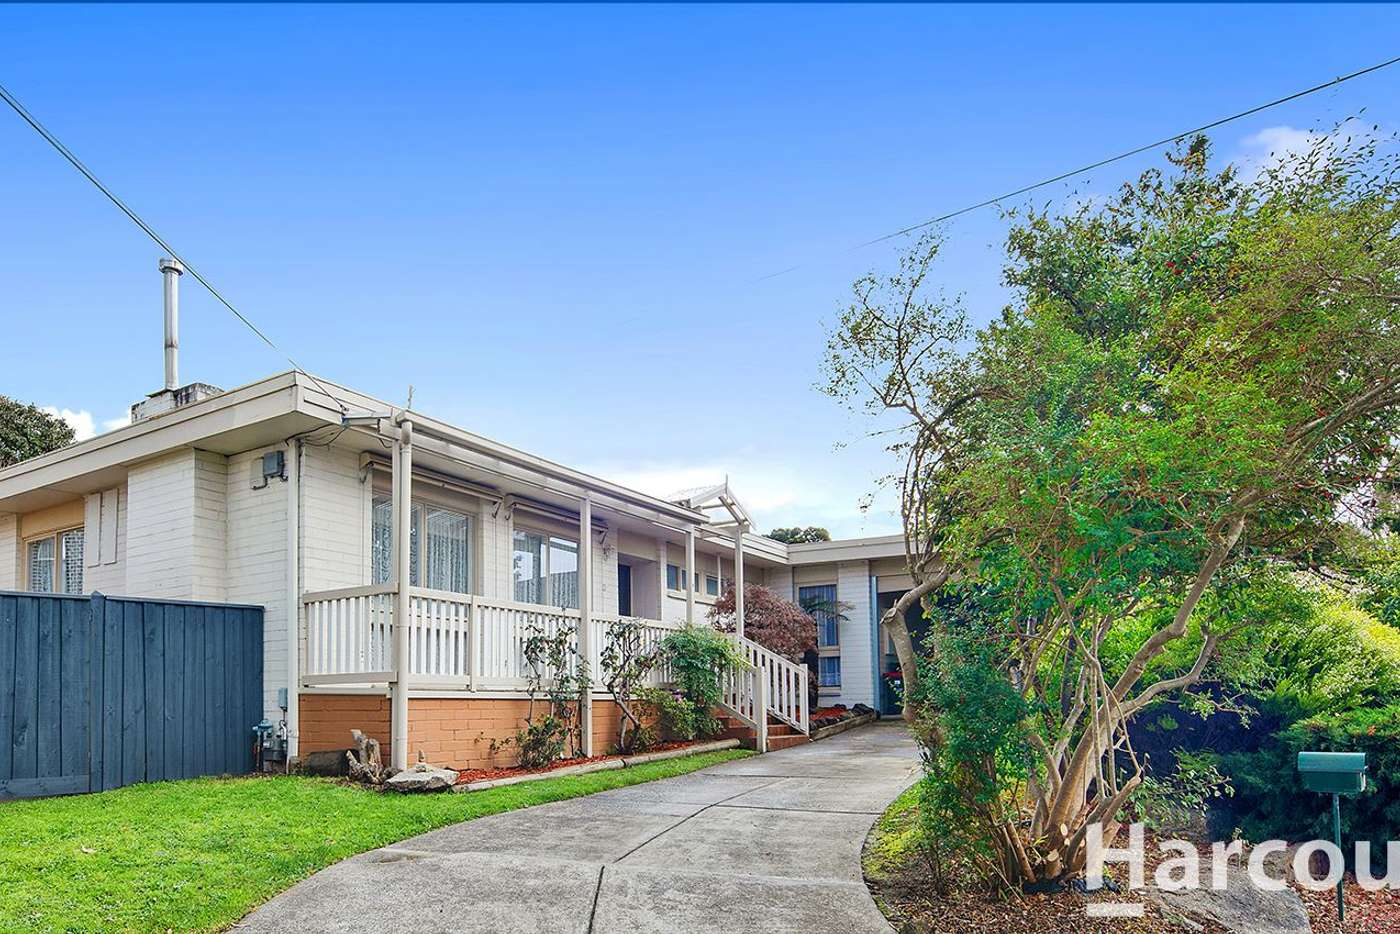 Main view of Homely house listing, 4 Consort Ave, Vermont South VIC 3133